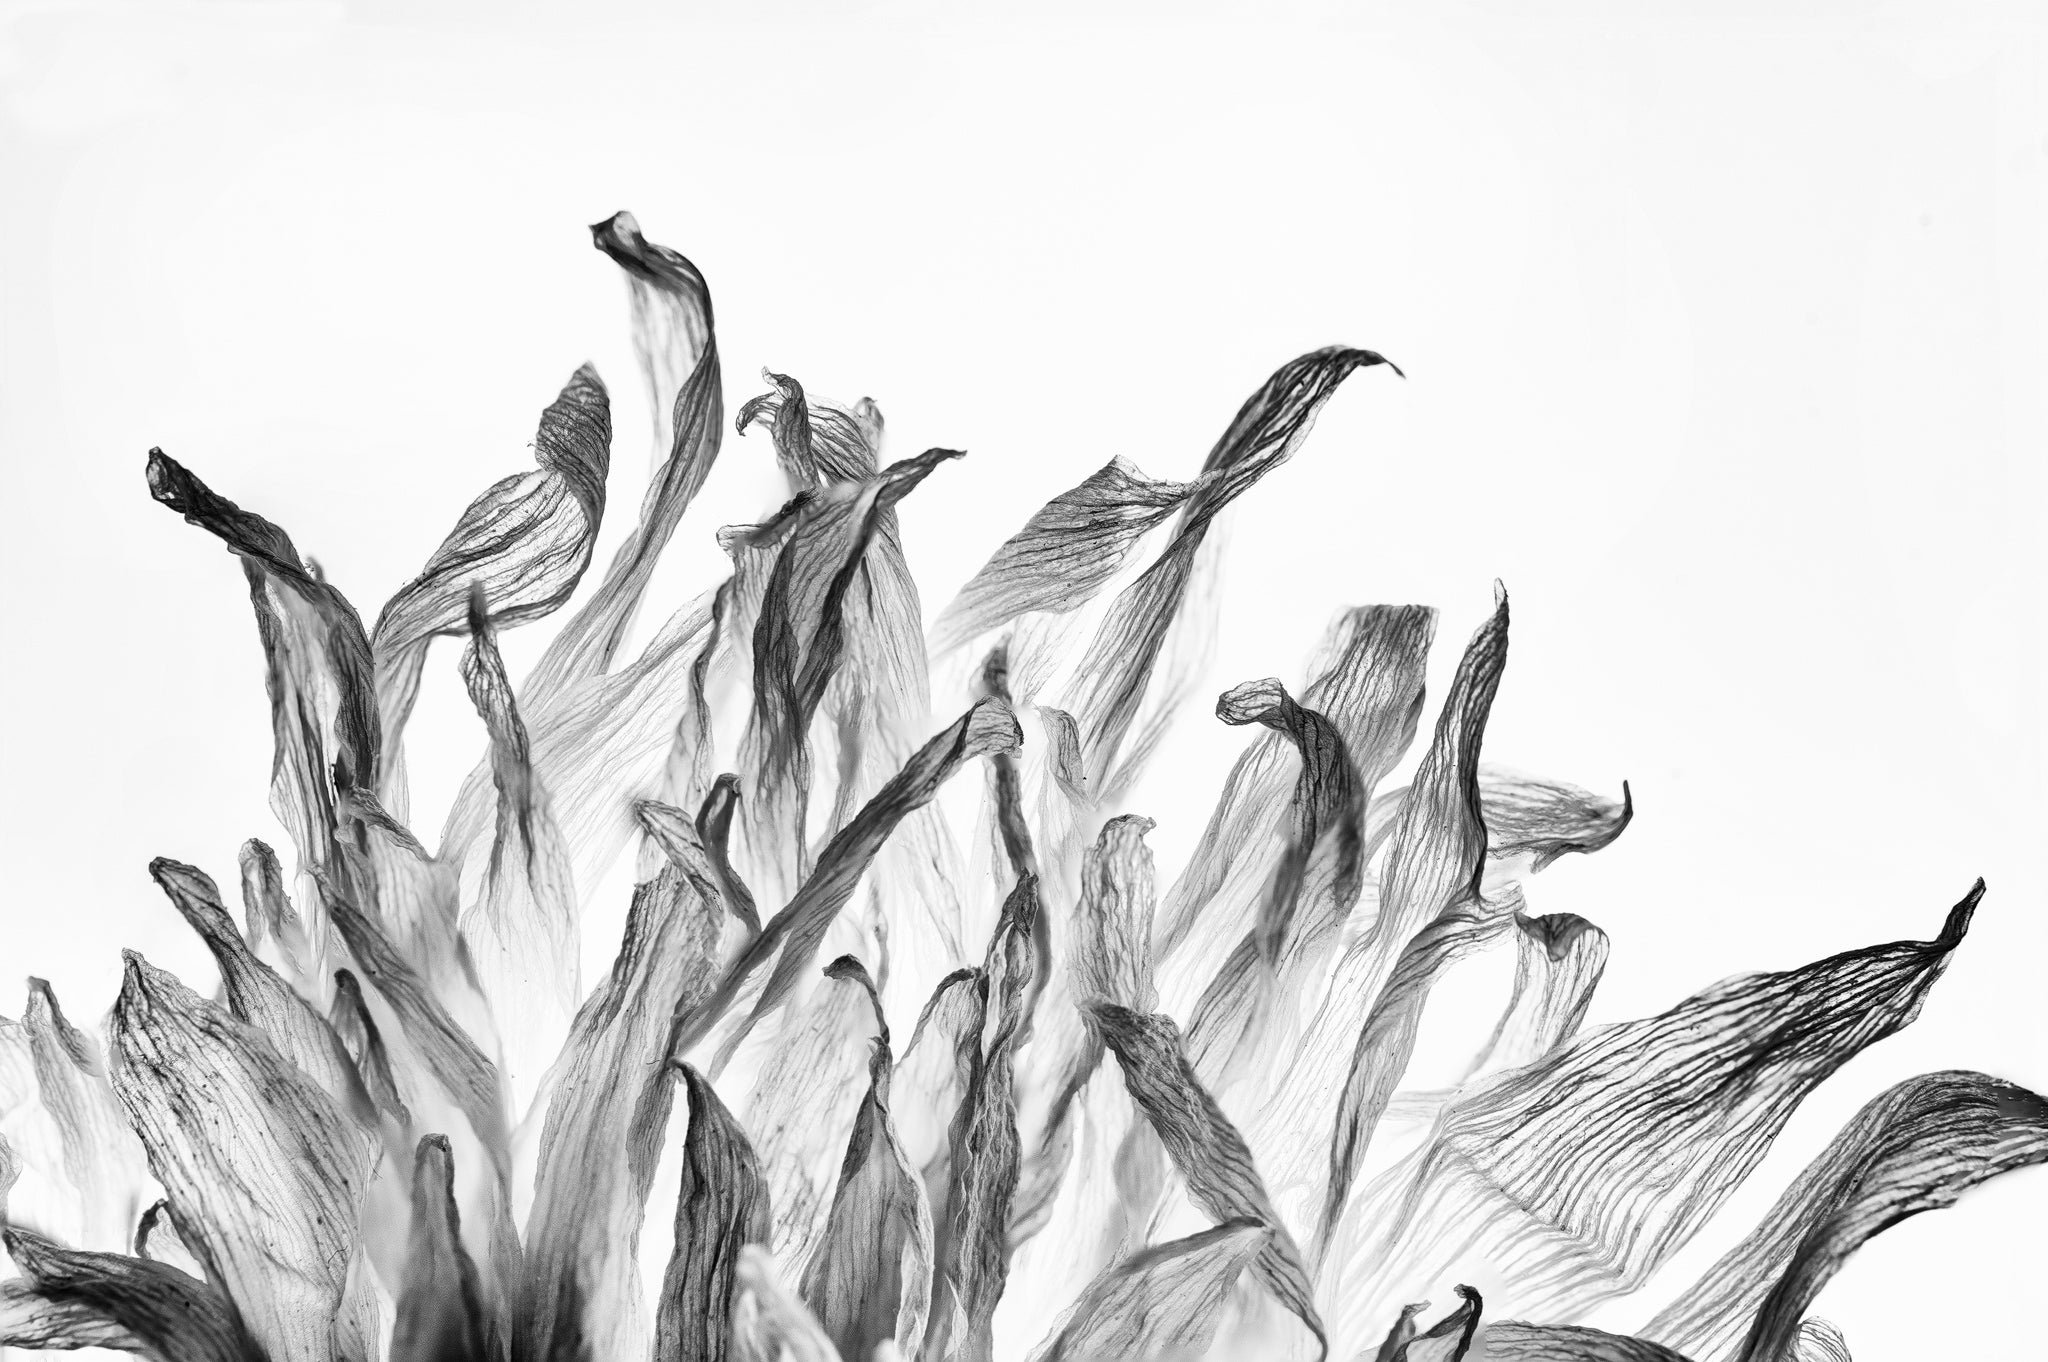 Old Flower Petals on a Backlight: Black and White Photograph by Keith Dotson. Buy a fine art print here.